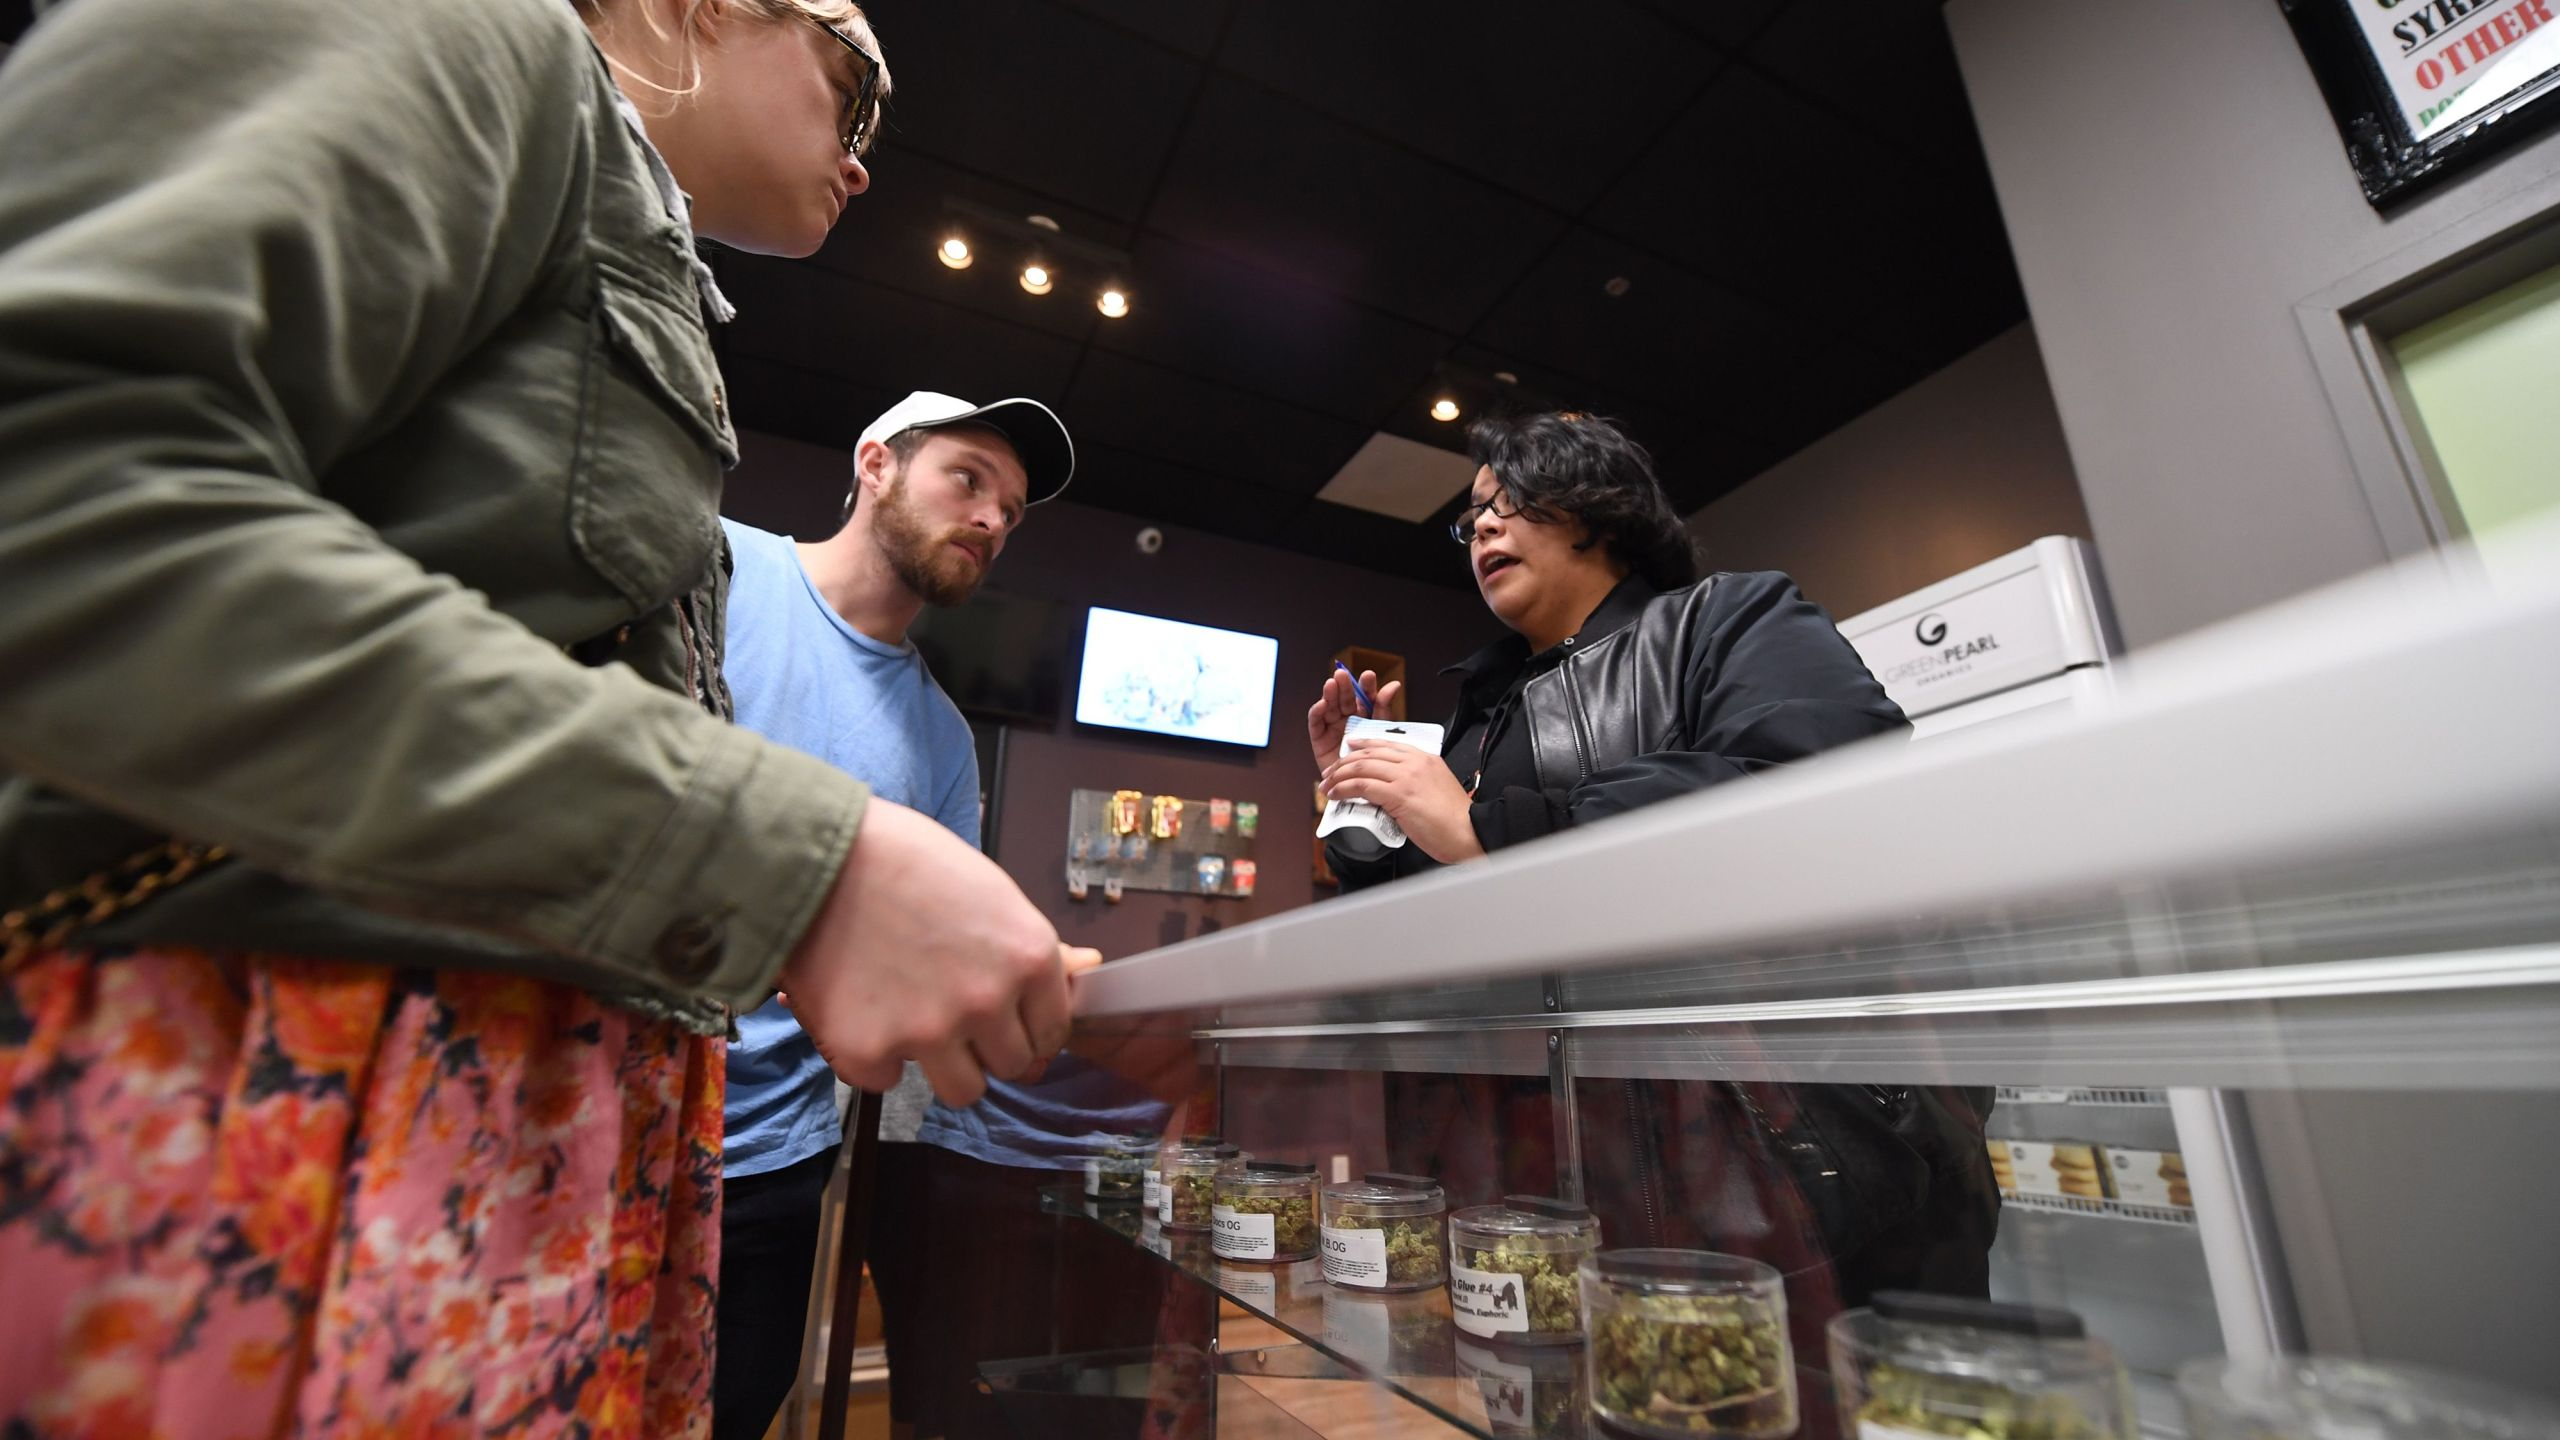 Tourists Laura Torgerson and Ryan Sheehan, visiting from Arizona, talk to a budtender at the Green Pearl Organics dispensary on the first day of legal recreational marijuana sales in California on Jan. 1, 2018 in Desert Hot Springs. (Credit: ROBYN BECK/AFP/Getty Images)